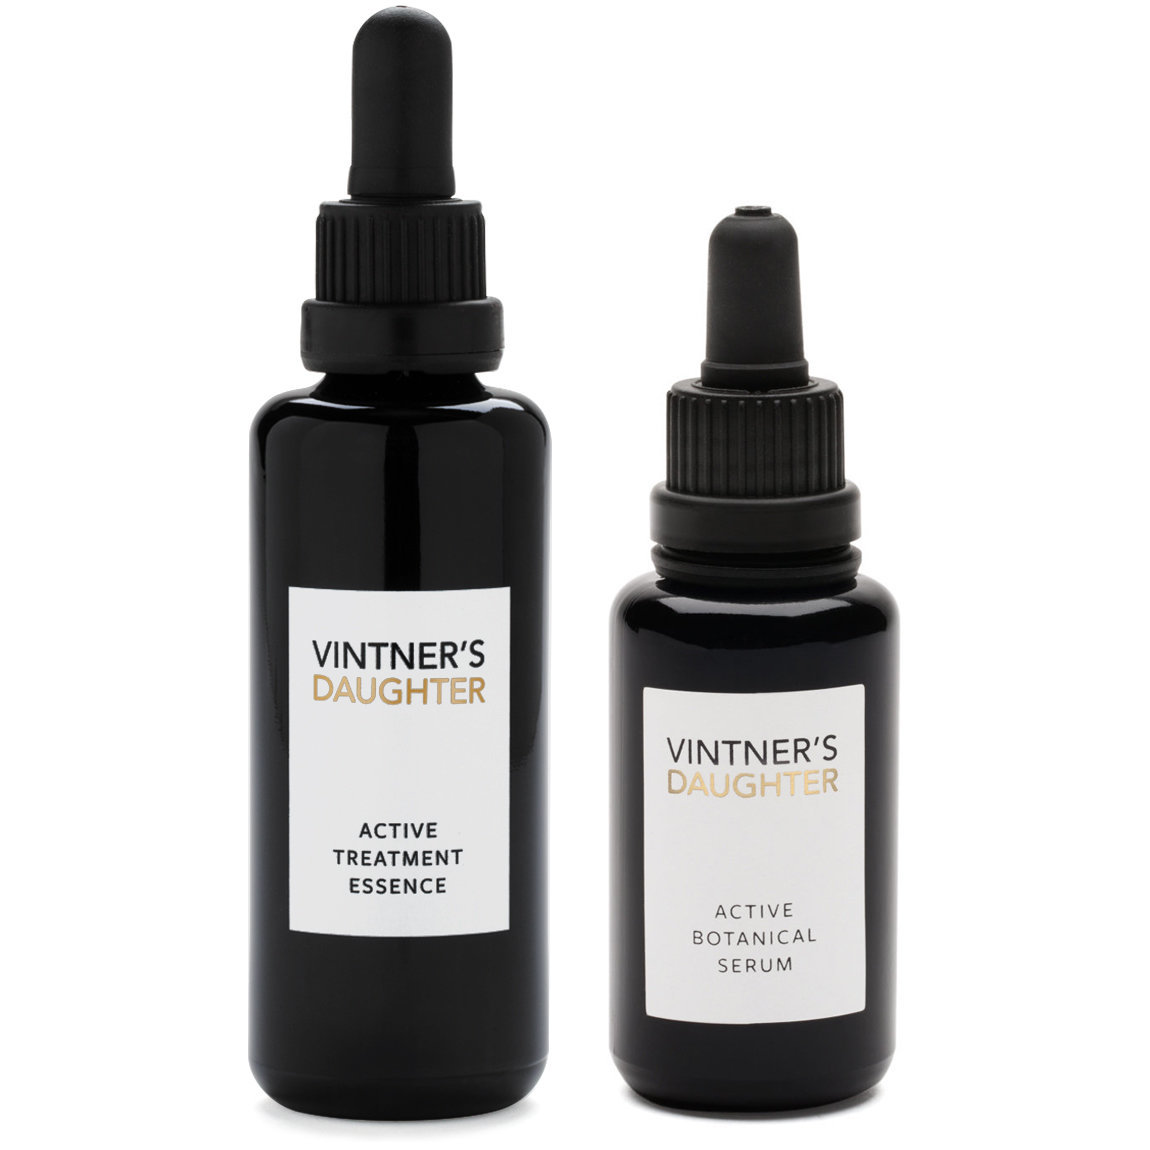 Vintner's Daughter Active Botancial Serum and Treatment Essence Bundle alternative view 1 - product swatch.